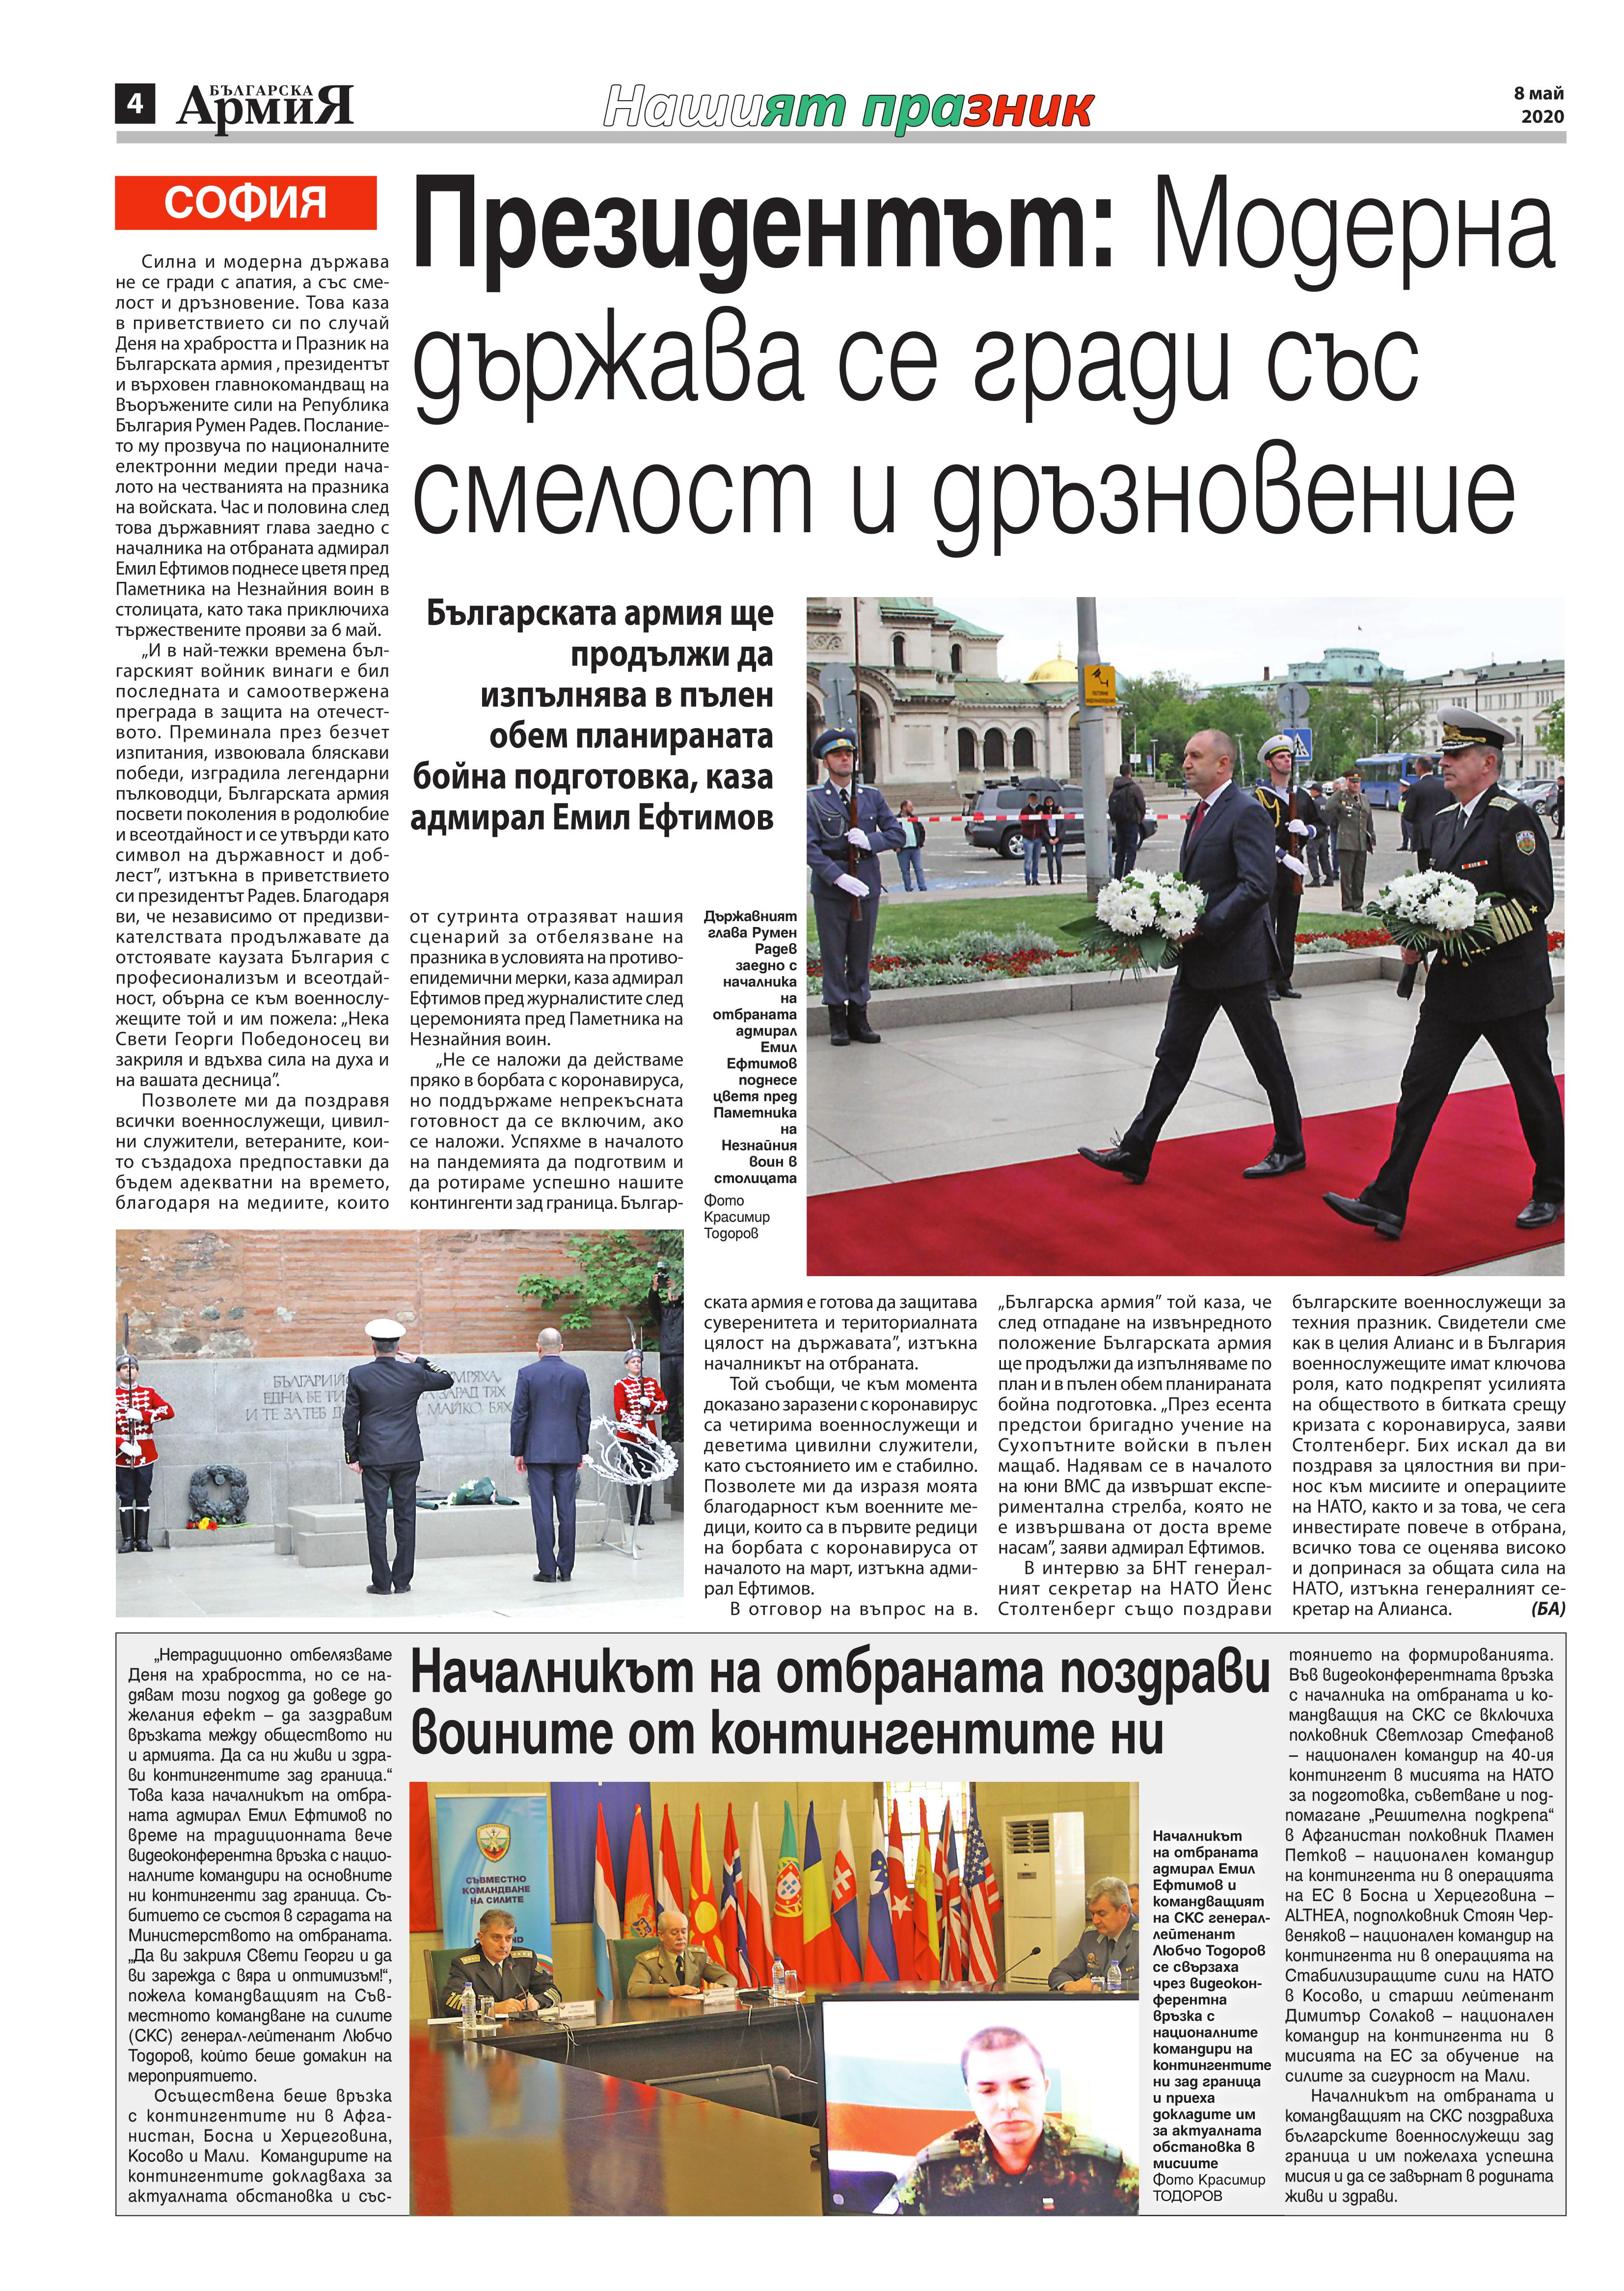 https://www.armymedia.bg/wp-content/uploads/2015/06/04.page1_-134.jpg